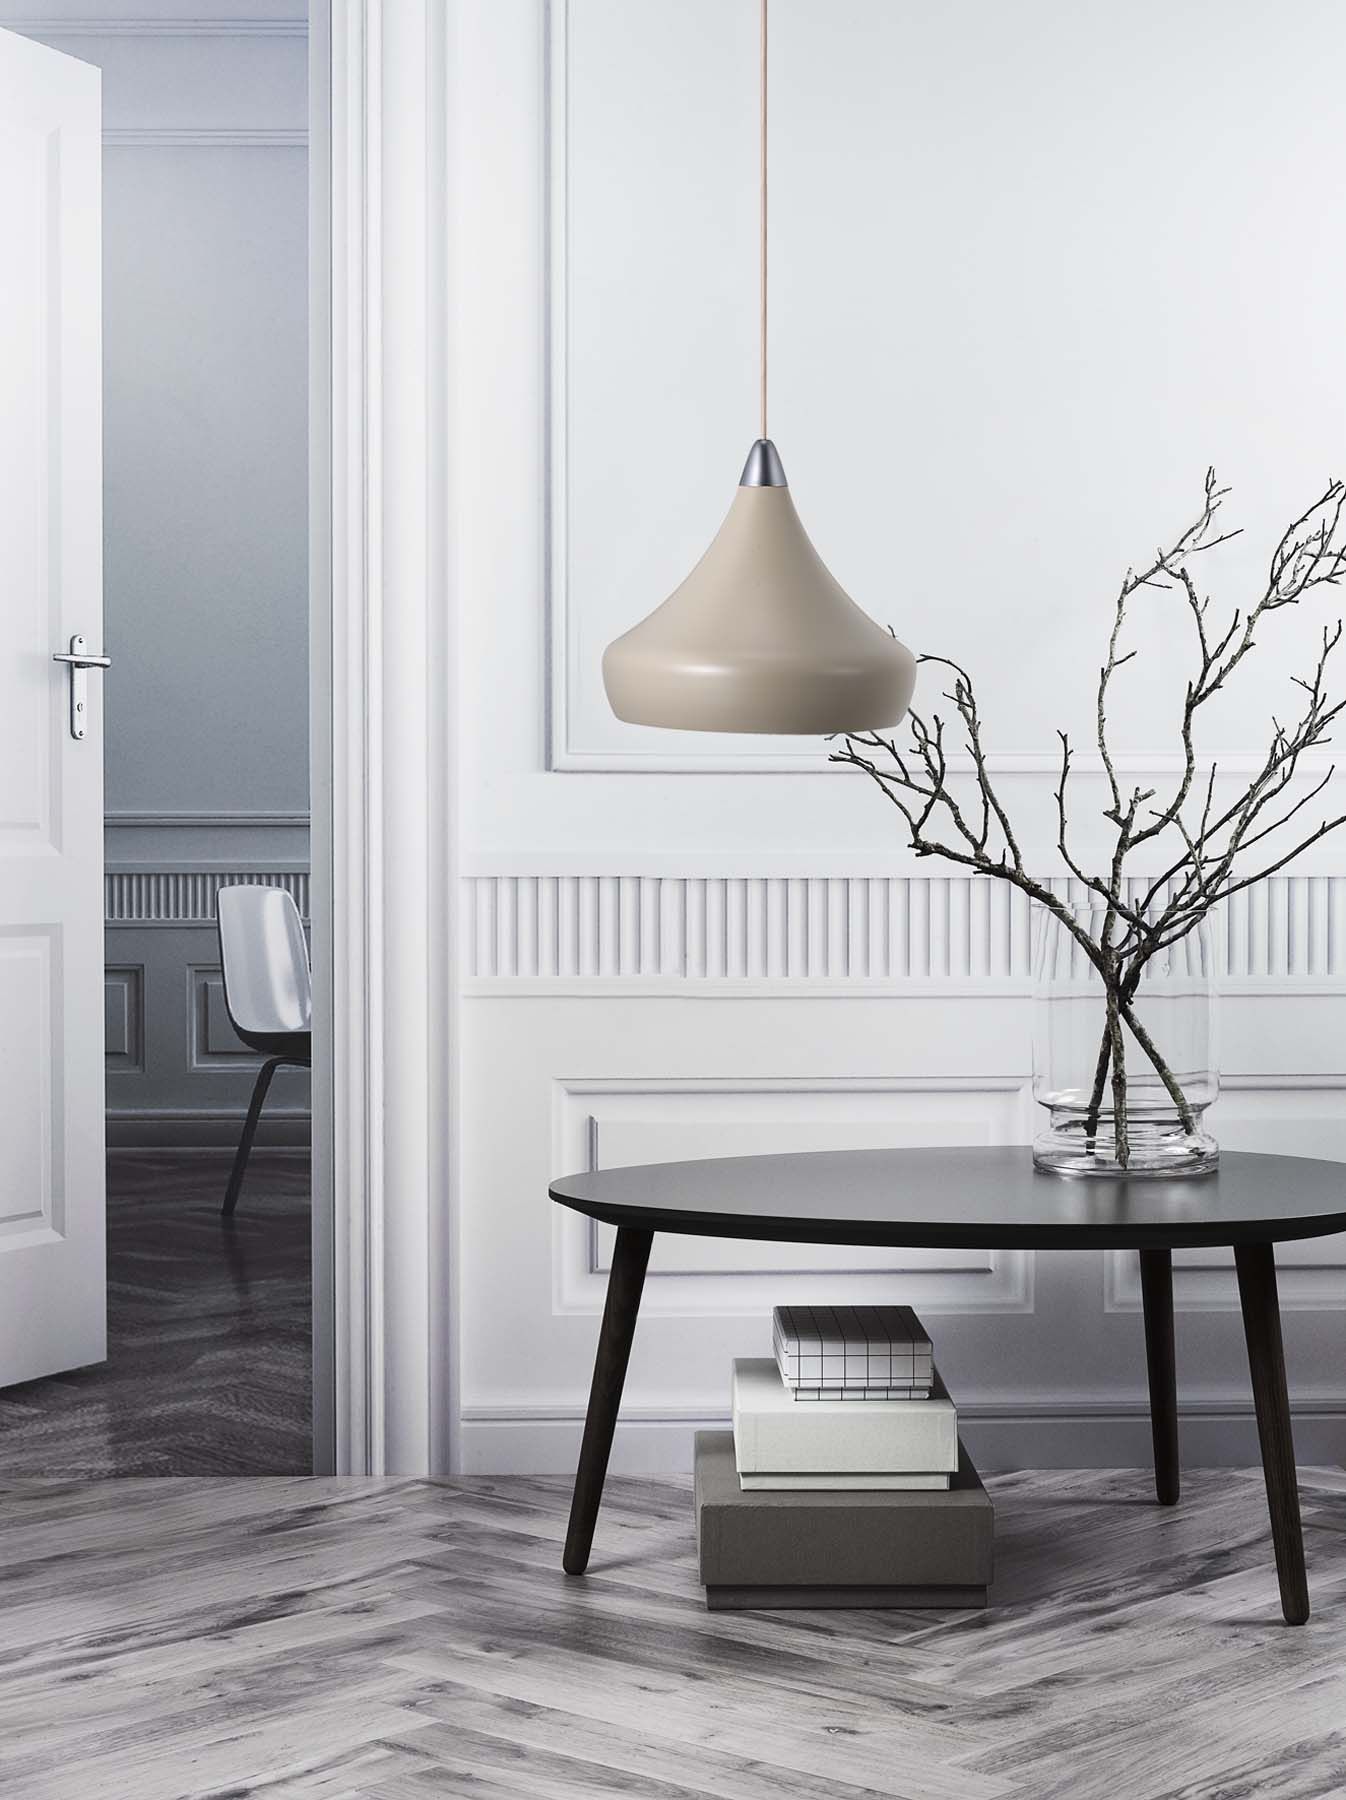 scandinavian lighting design. Fascino | Pendant From Nordlux Designed By Seidenfaden Design Nordic And Scandinavian Style Produced In Sanded Metal With Textile Cord Light Lighting V